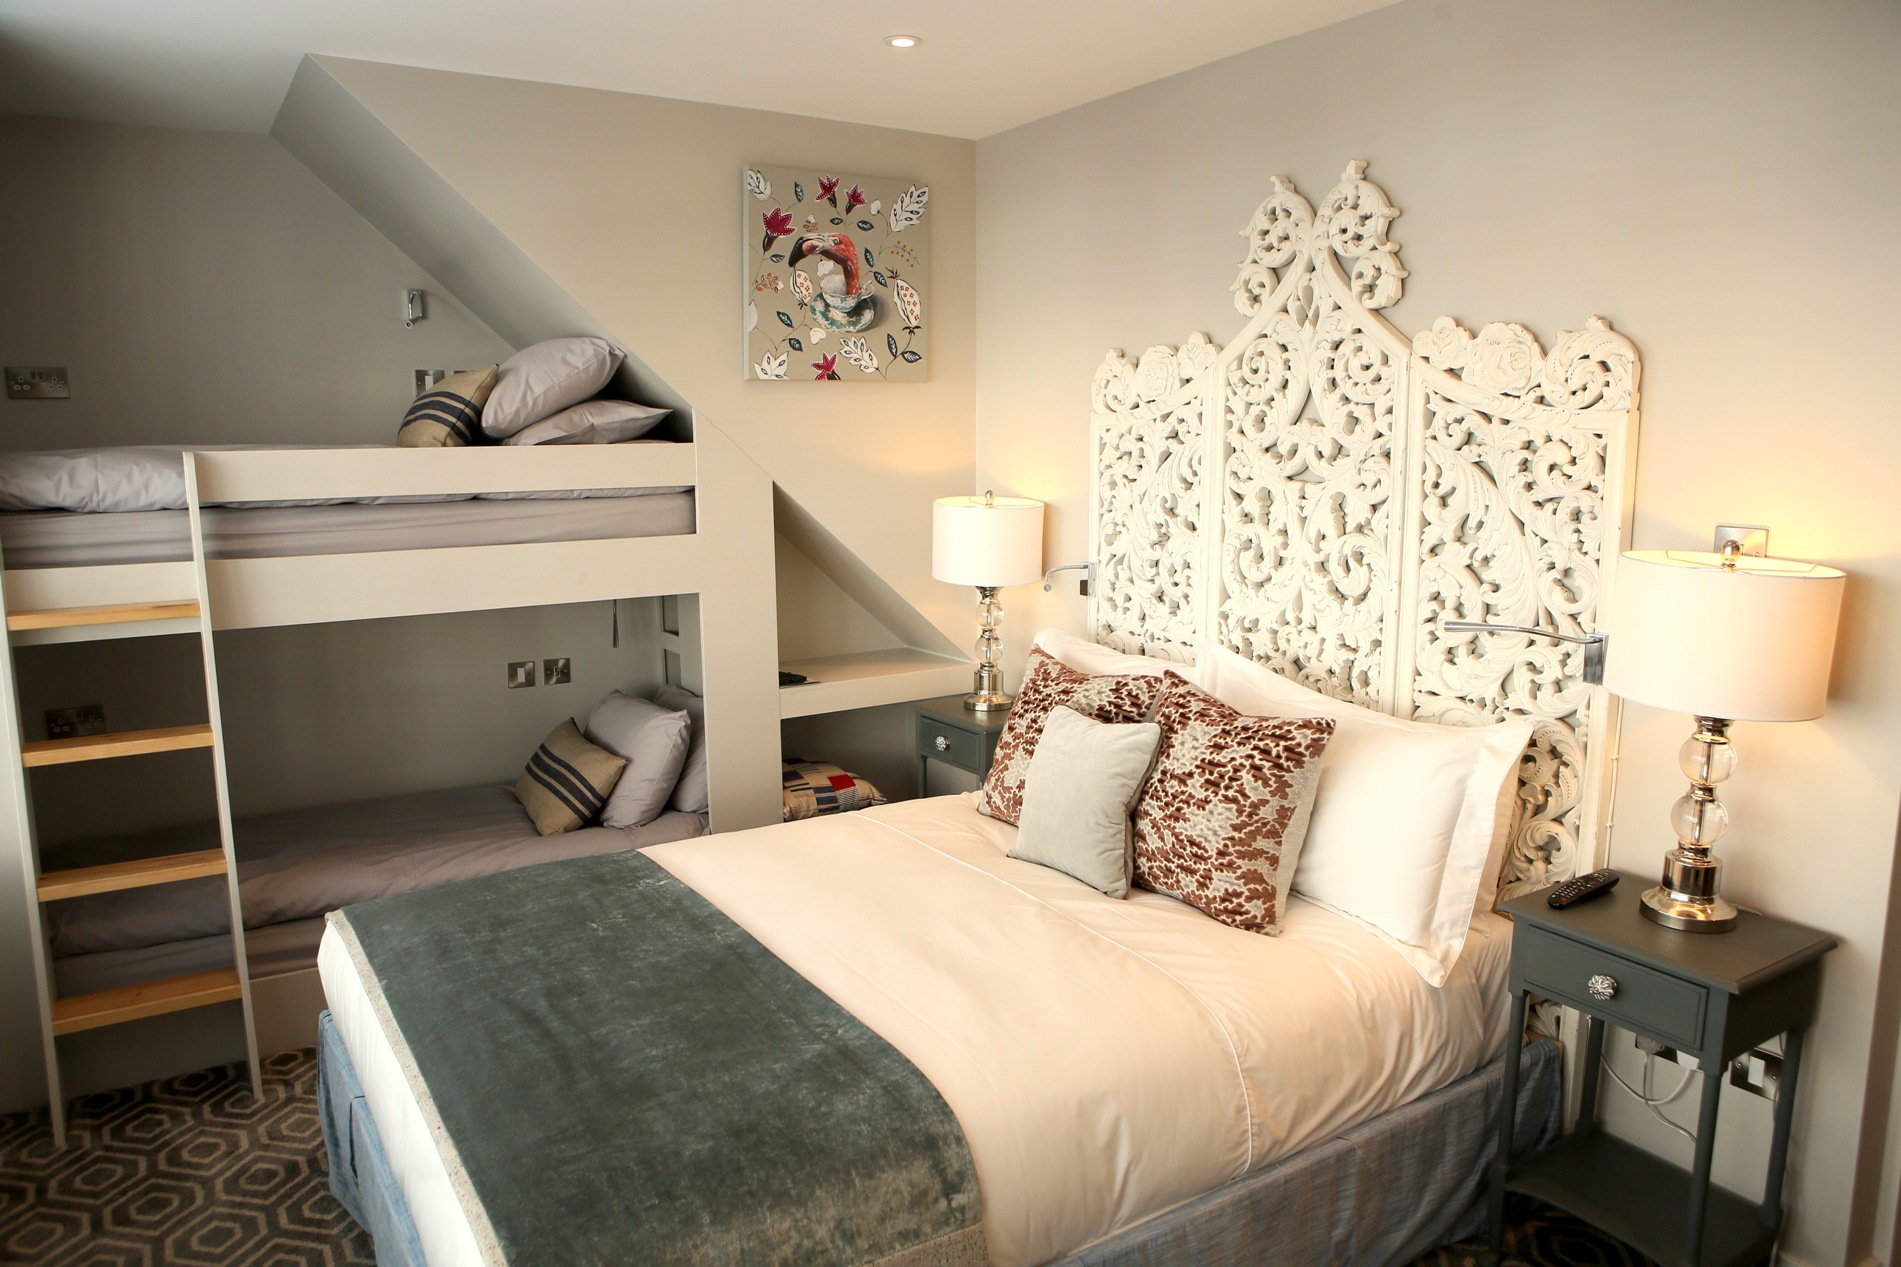 Bed And Breakfast Broadstairs Rooms At Number 1 England Hidden Gems